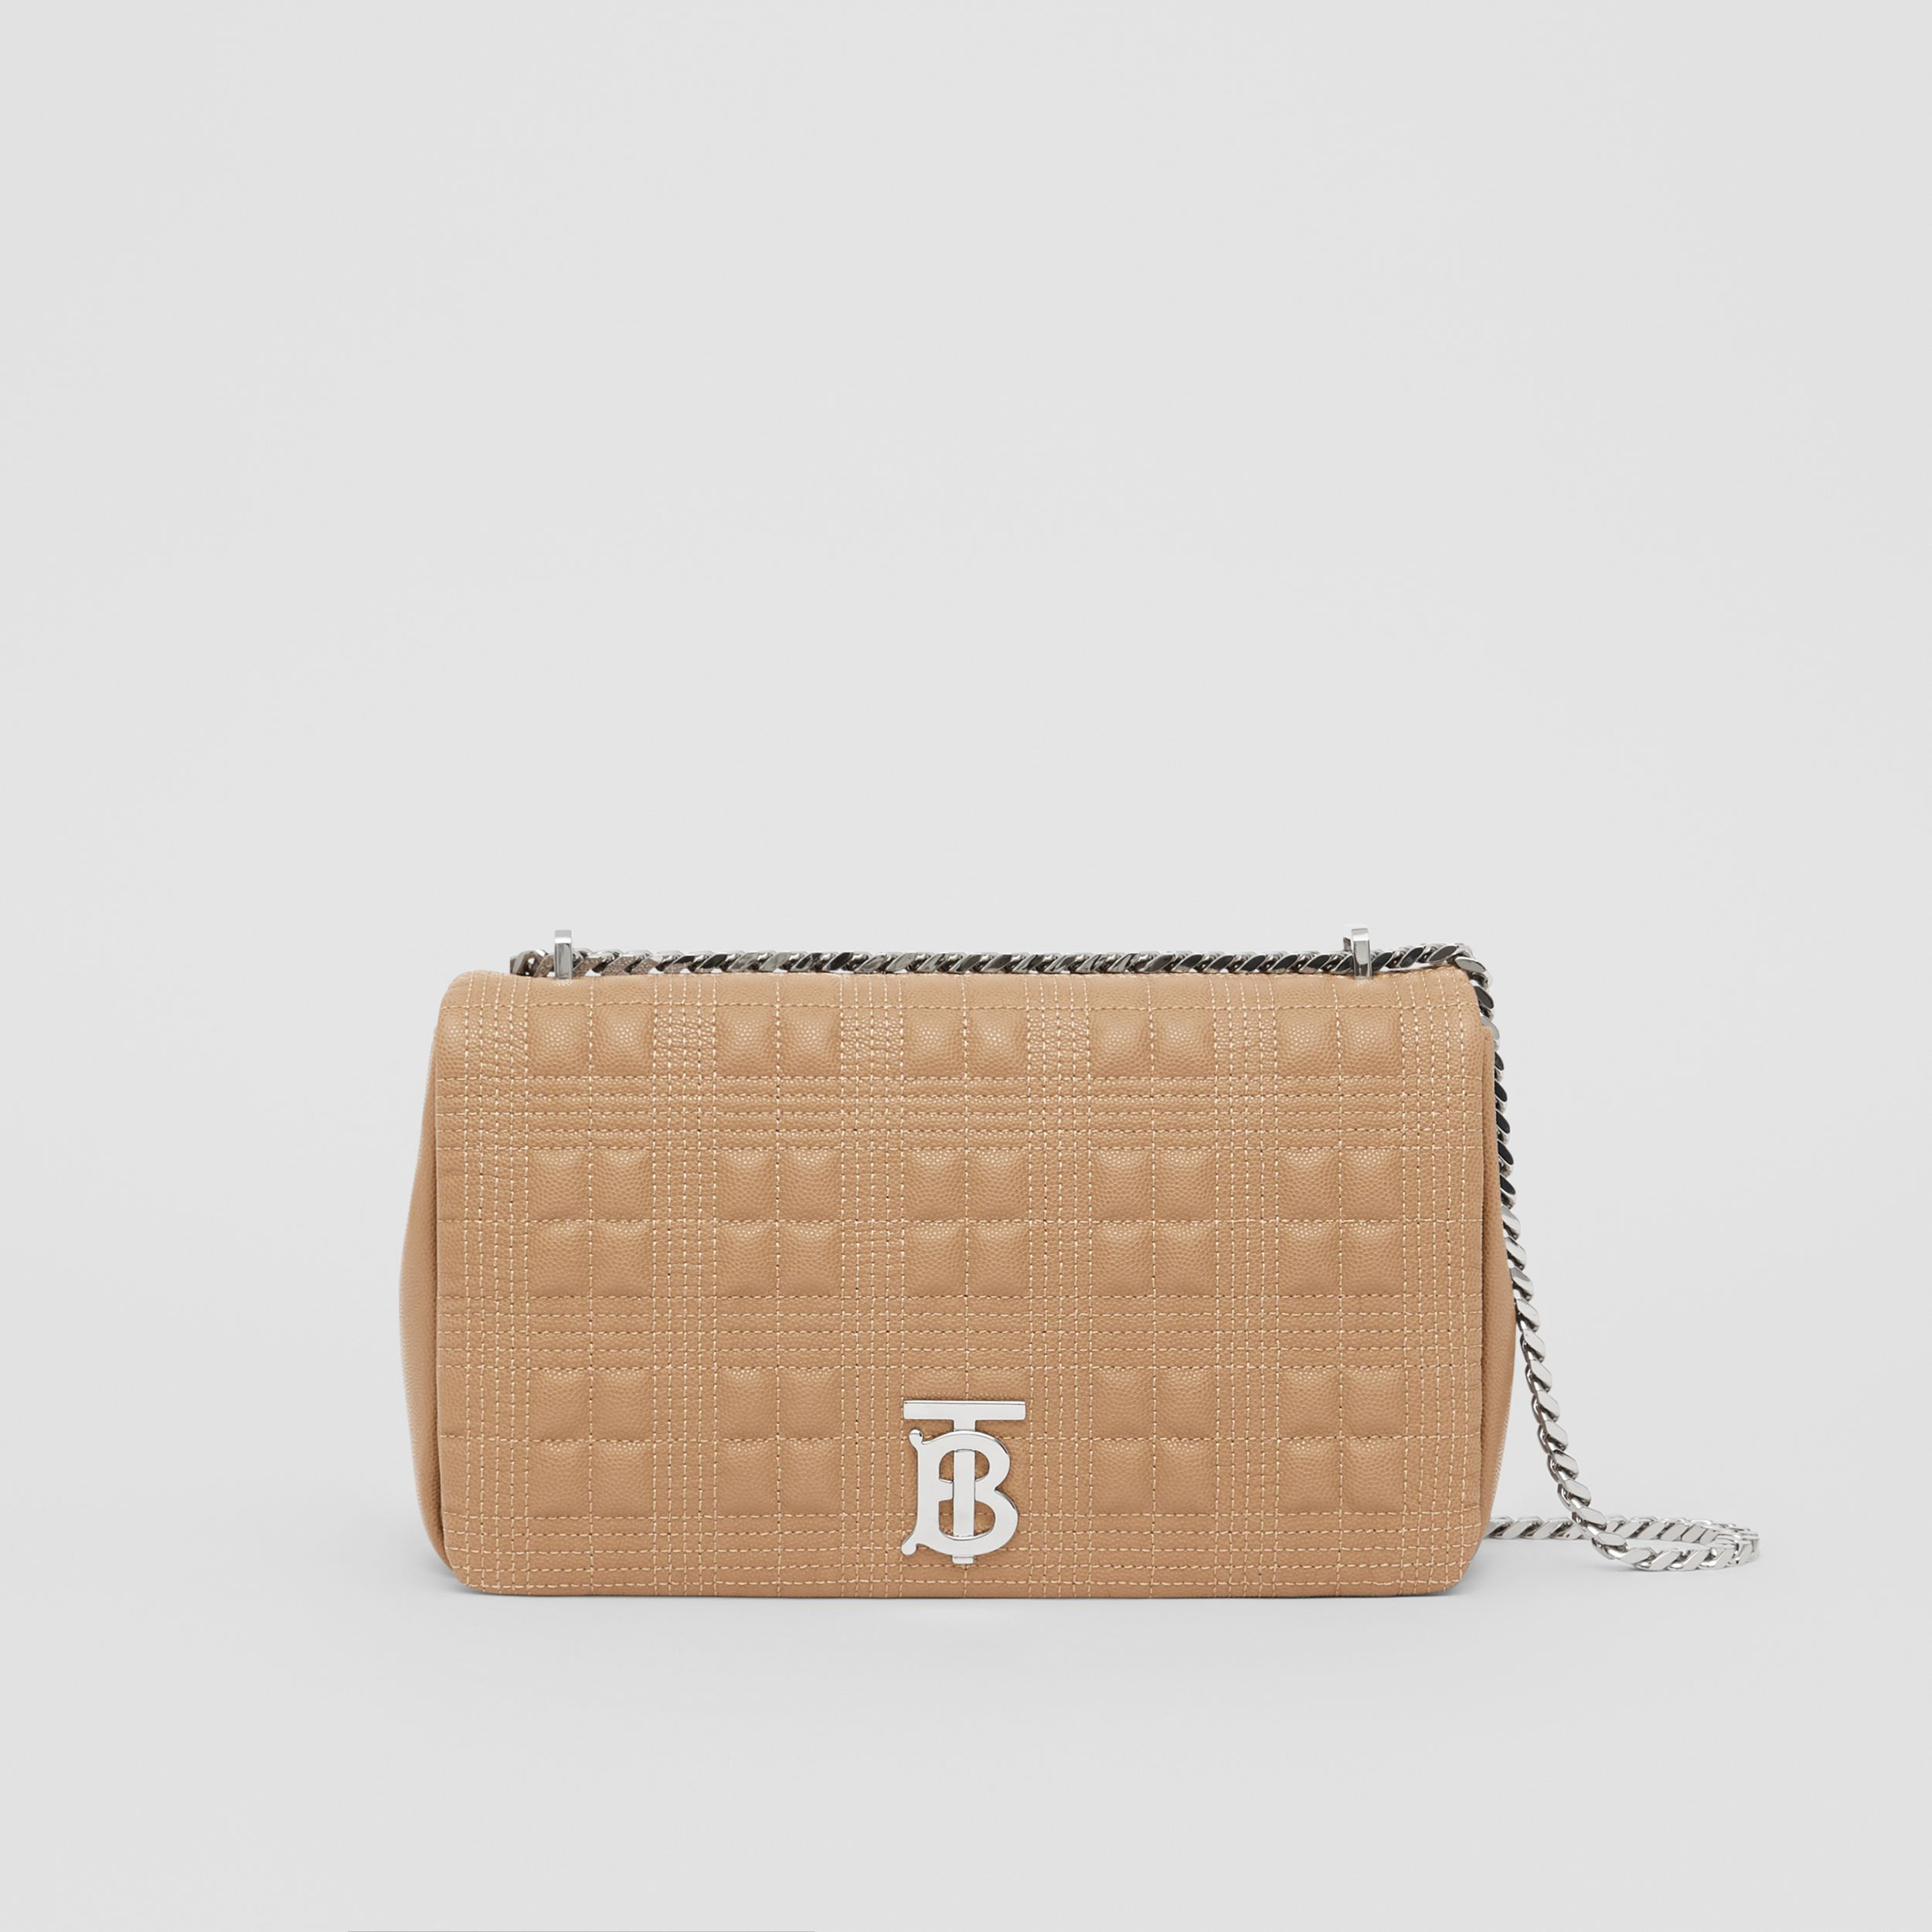 Medium Quilted Grainy Leather Lola Bag in Camel - Women | Burberry - 1